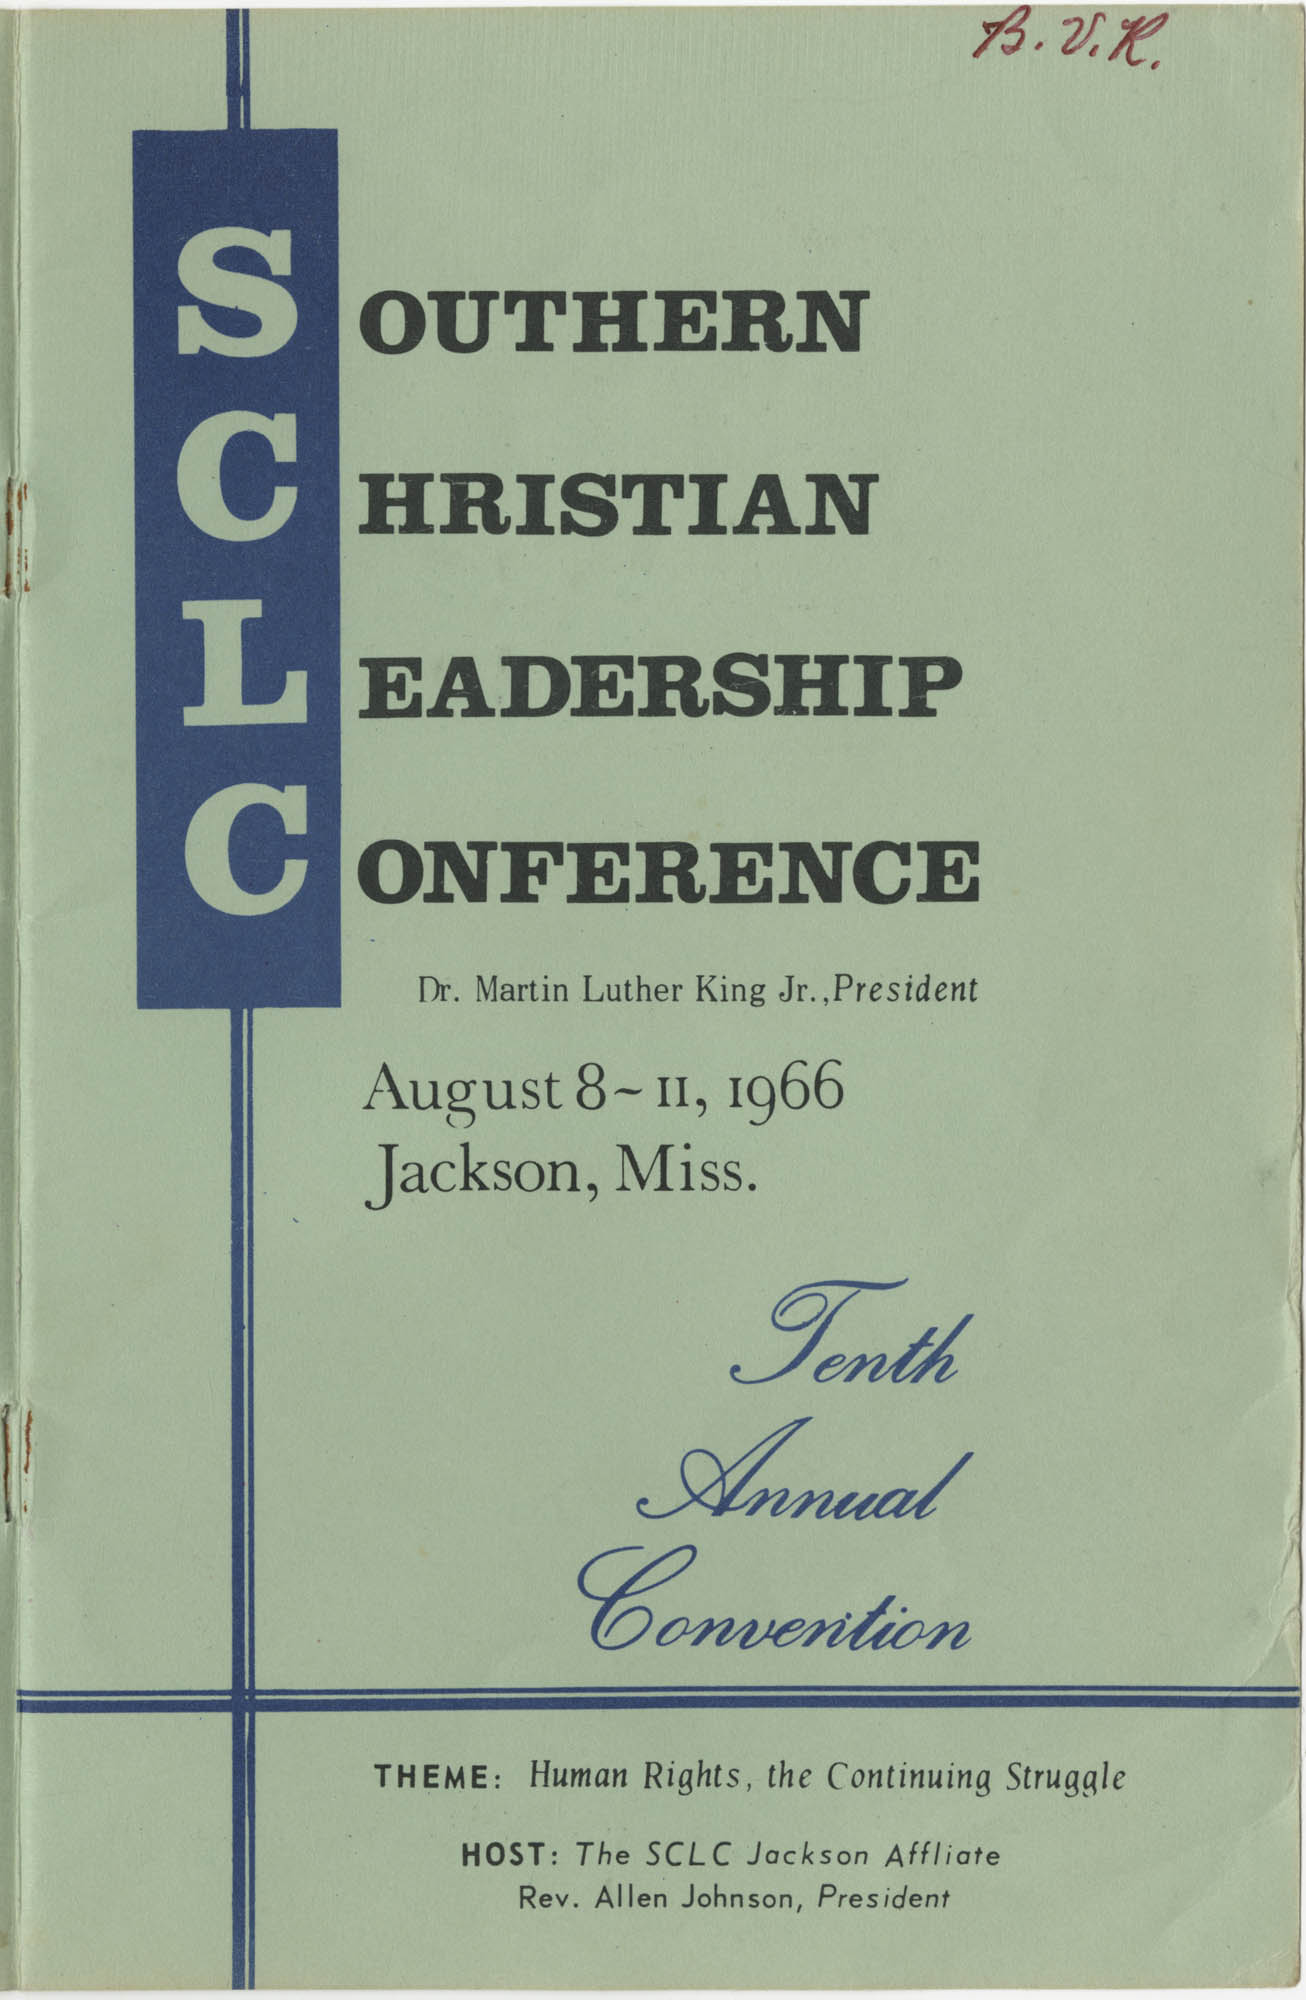 Southern Christian Leadership Conference, Tenth Annual Convention